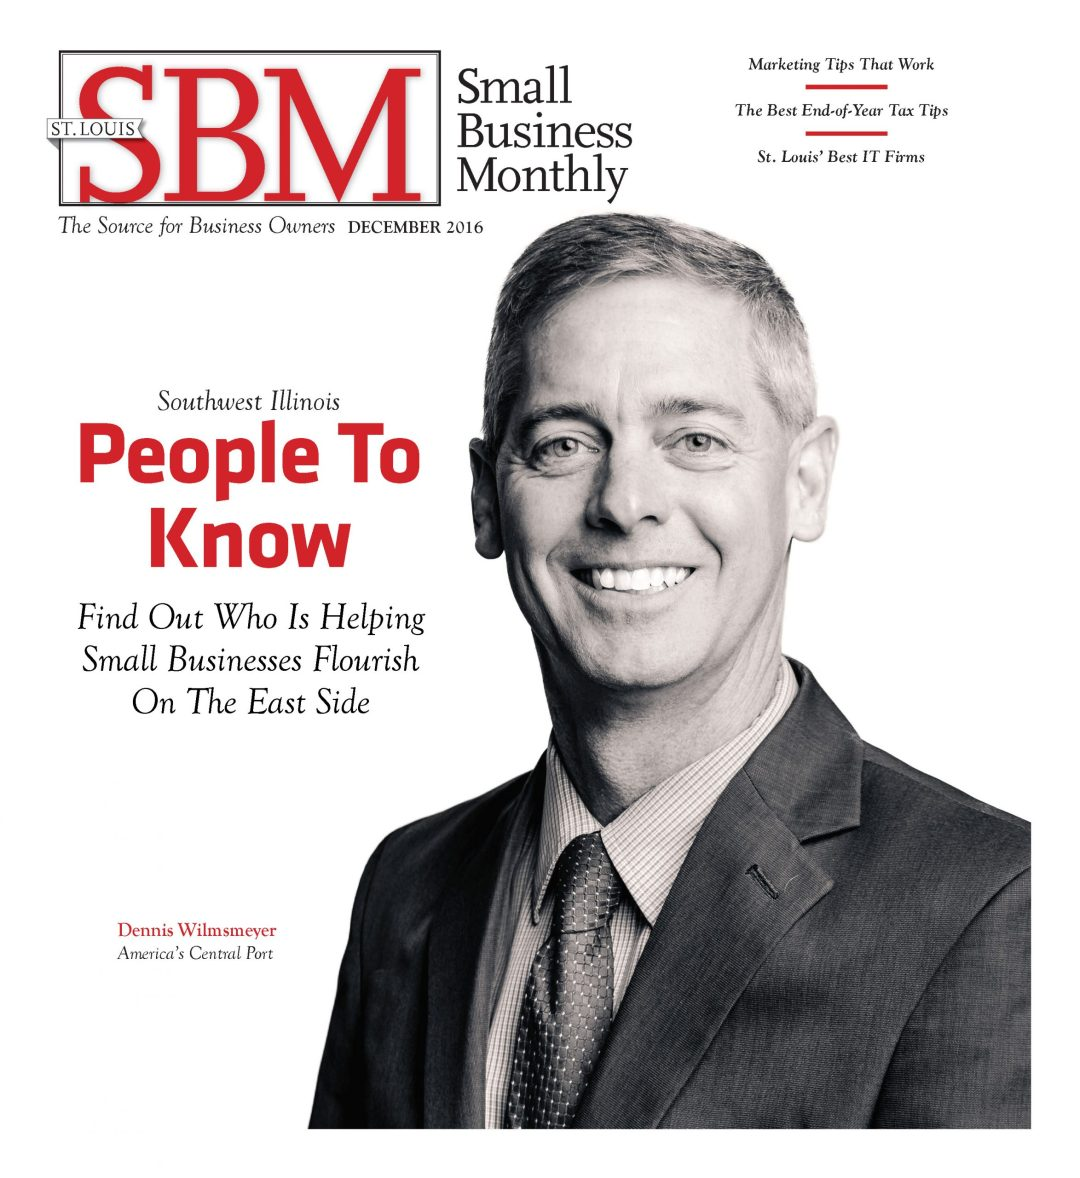 Small Business Monthly December 2016 Cover